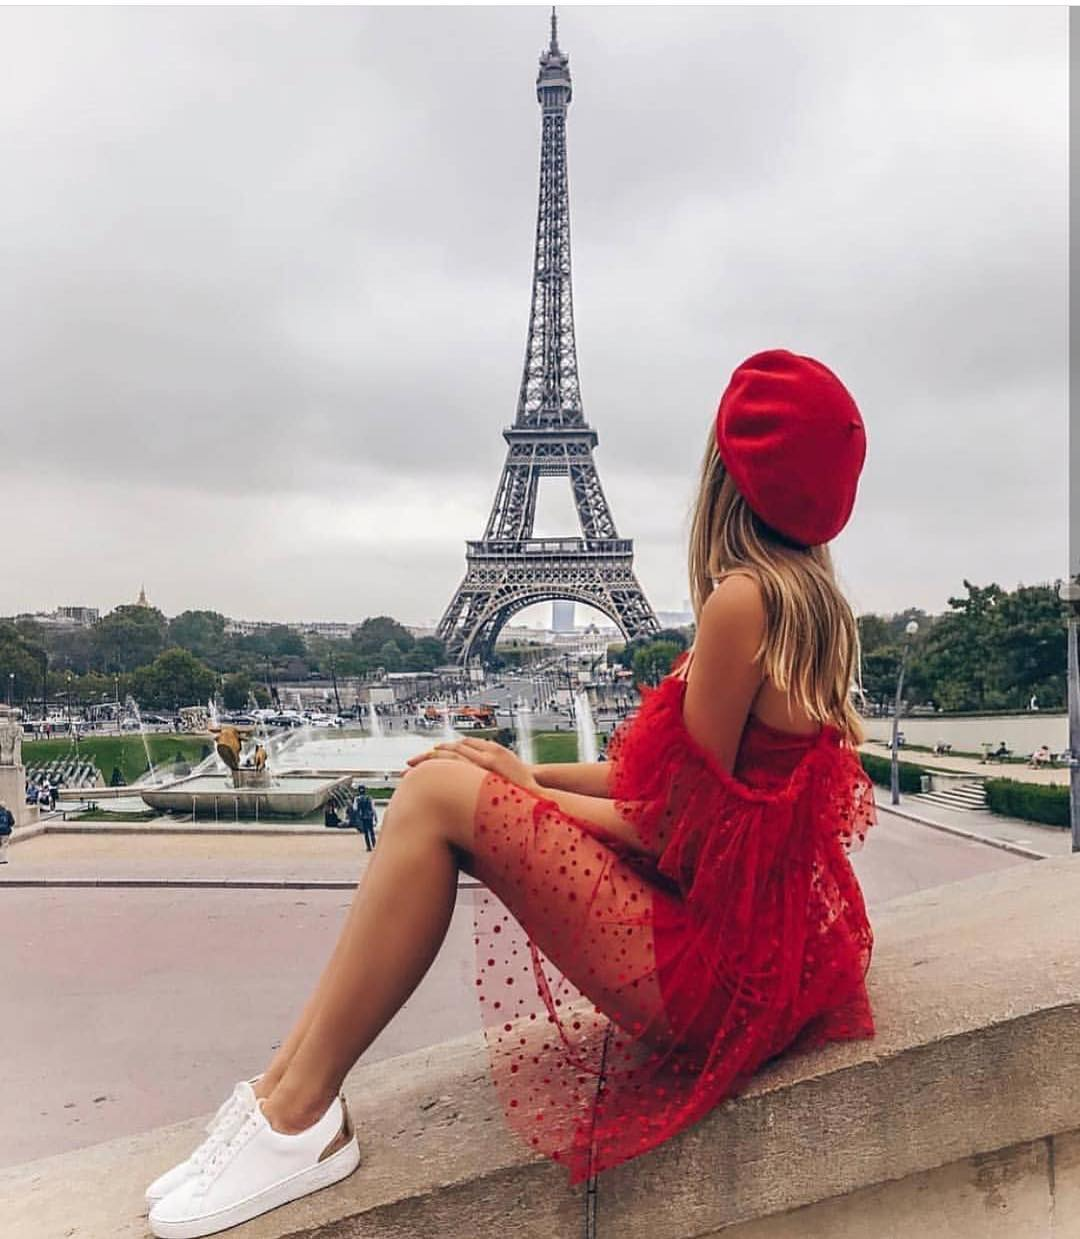 Parisian Chic Red Outfit: Sheer Red Dress, Red Beret And White Sneakers 2019